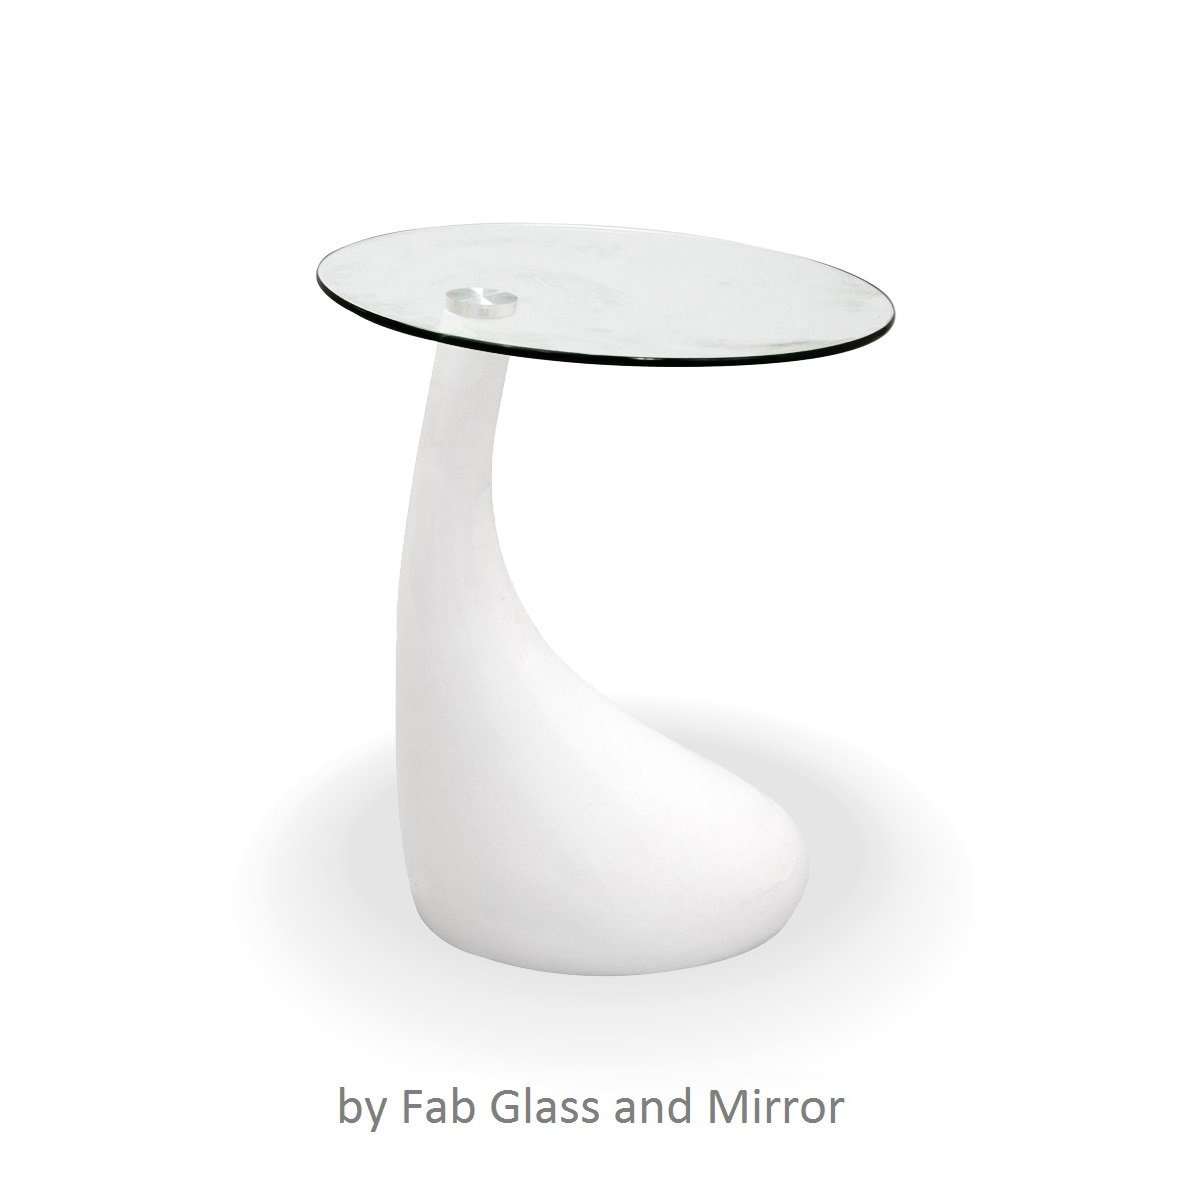 glass and mirror teardrop side table white kitchen hawthorne top accent bronze dining decorative chest nest furniture winsome wood end teal blue coffee square patio cover